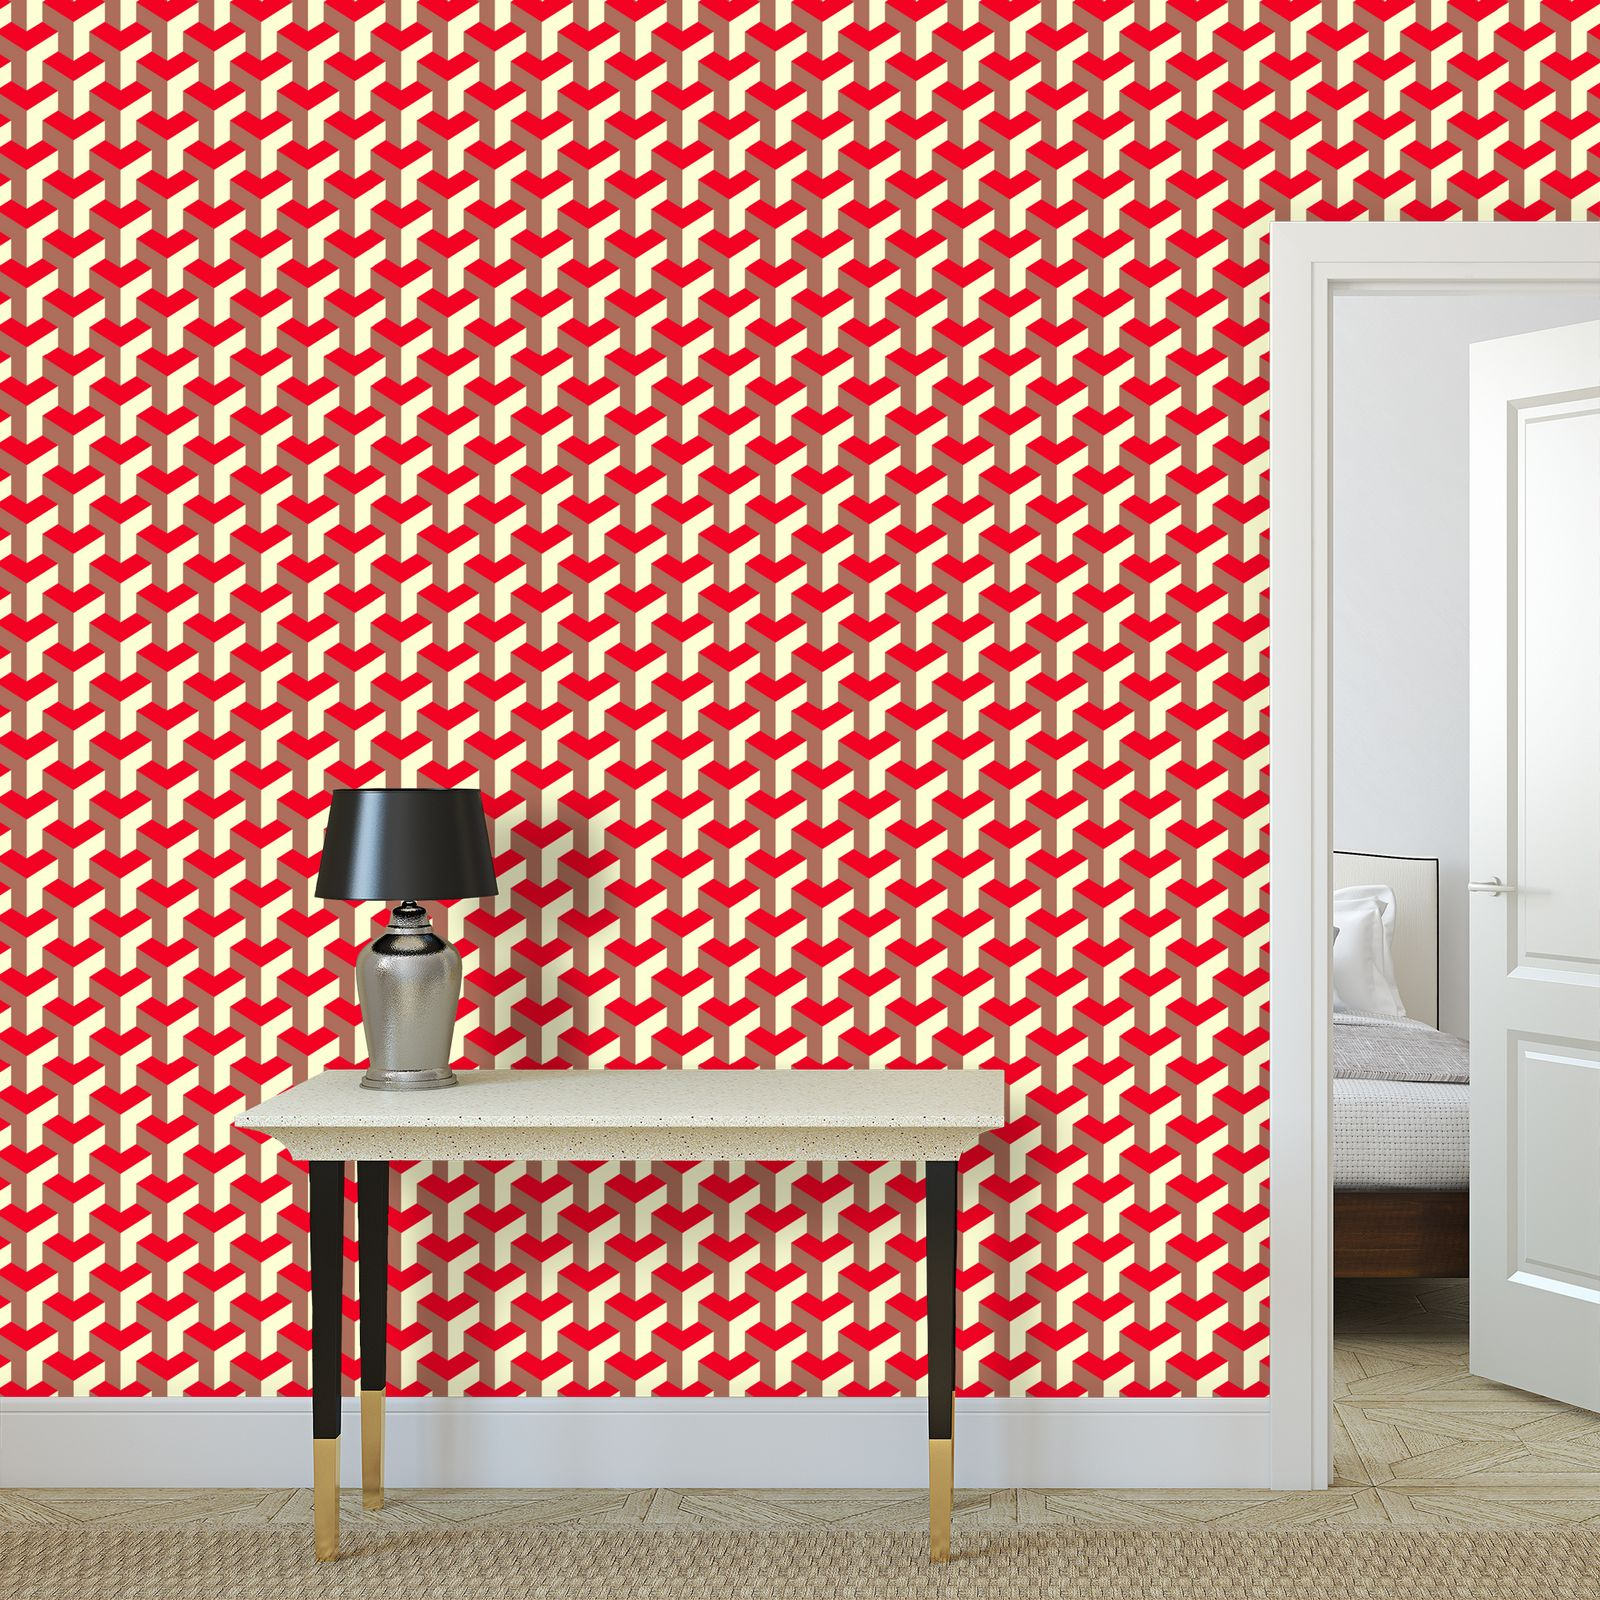 Heart in a cube - Wallpaper Rolls - Abstract geometry, red, contrasting, bright, elegant, statement, futuristic, spectacular, graphic, noble, asymmetrical, effective, stylish gift - design by Tiana Lofd